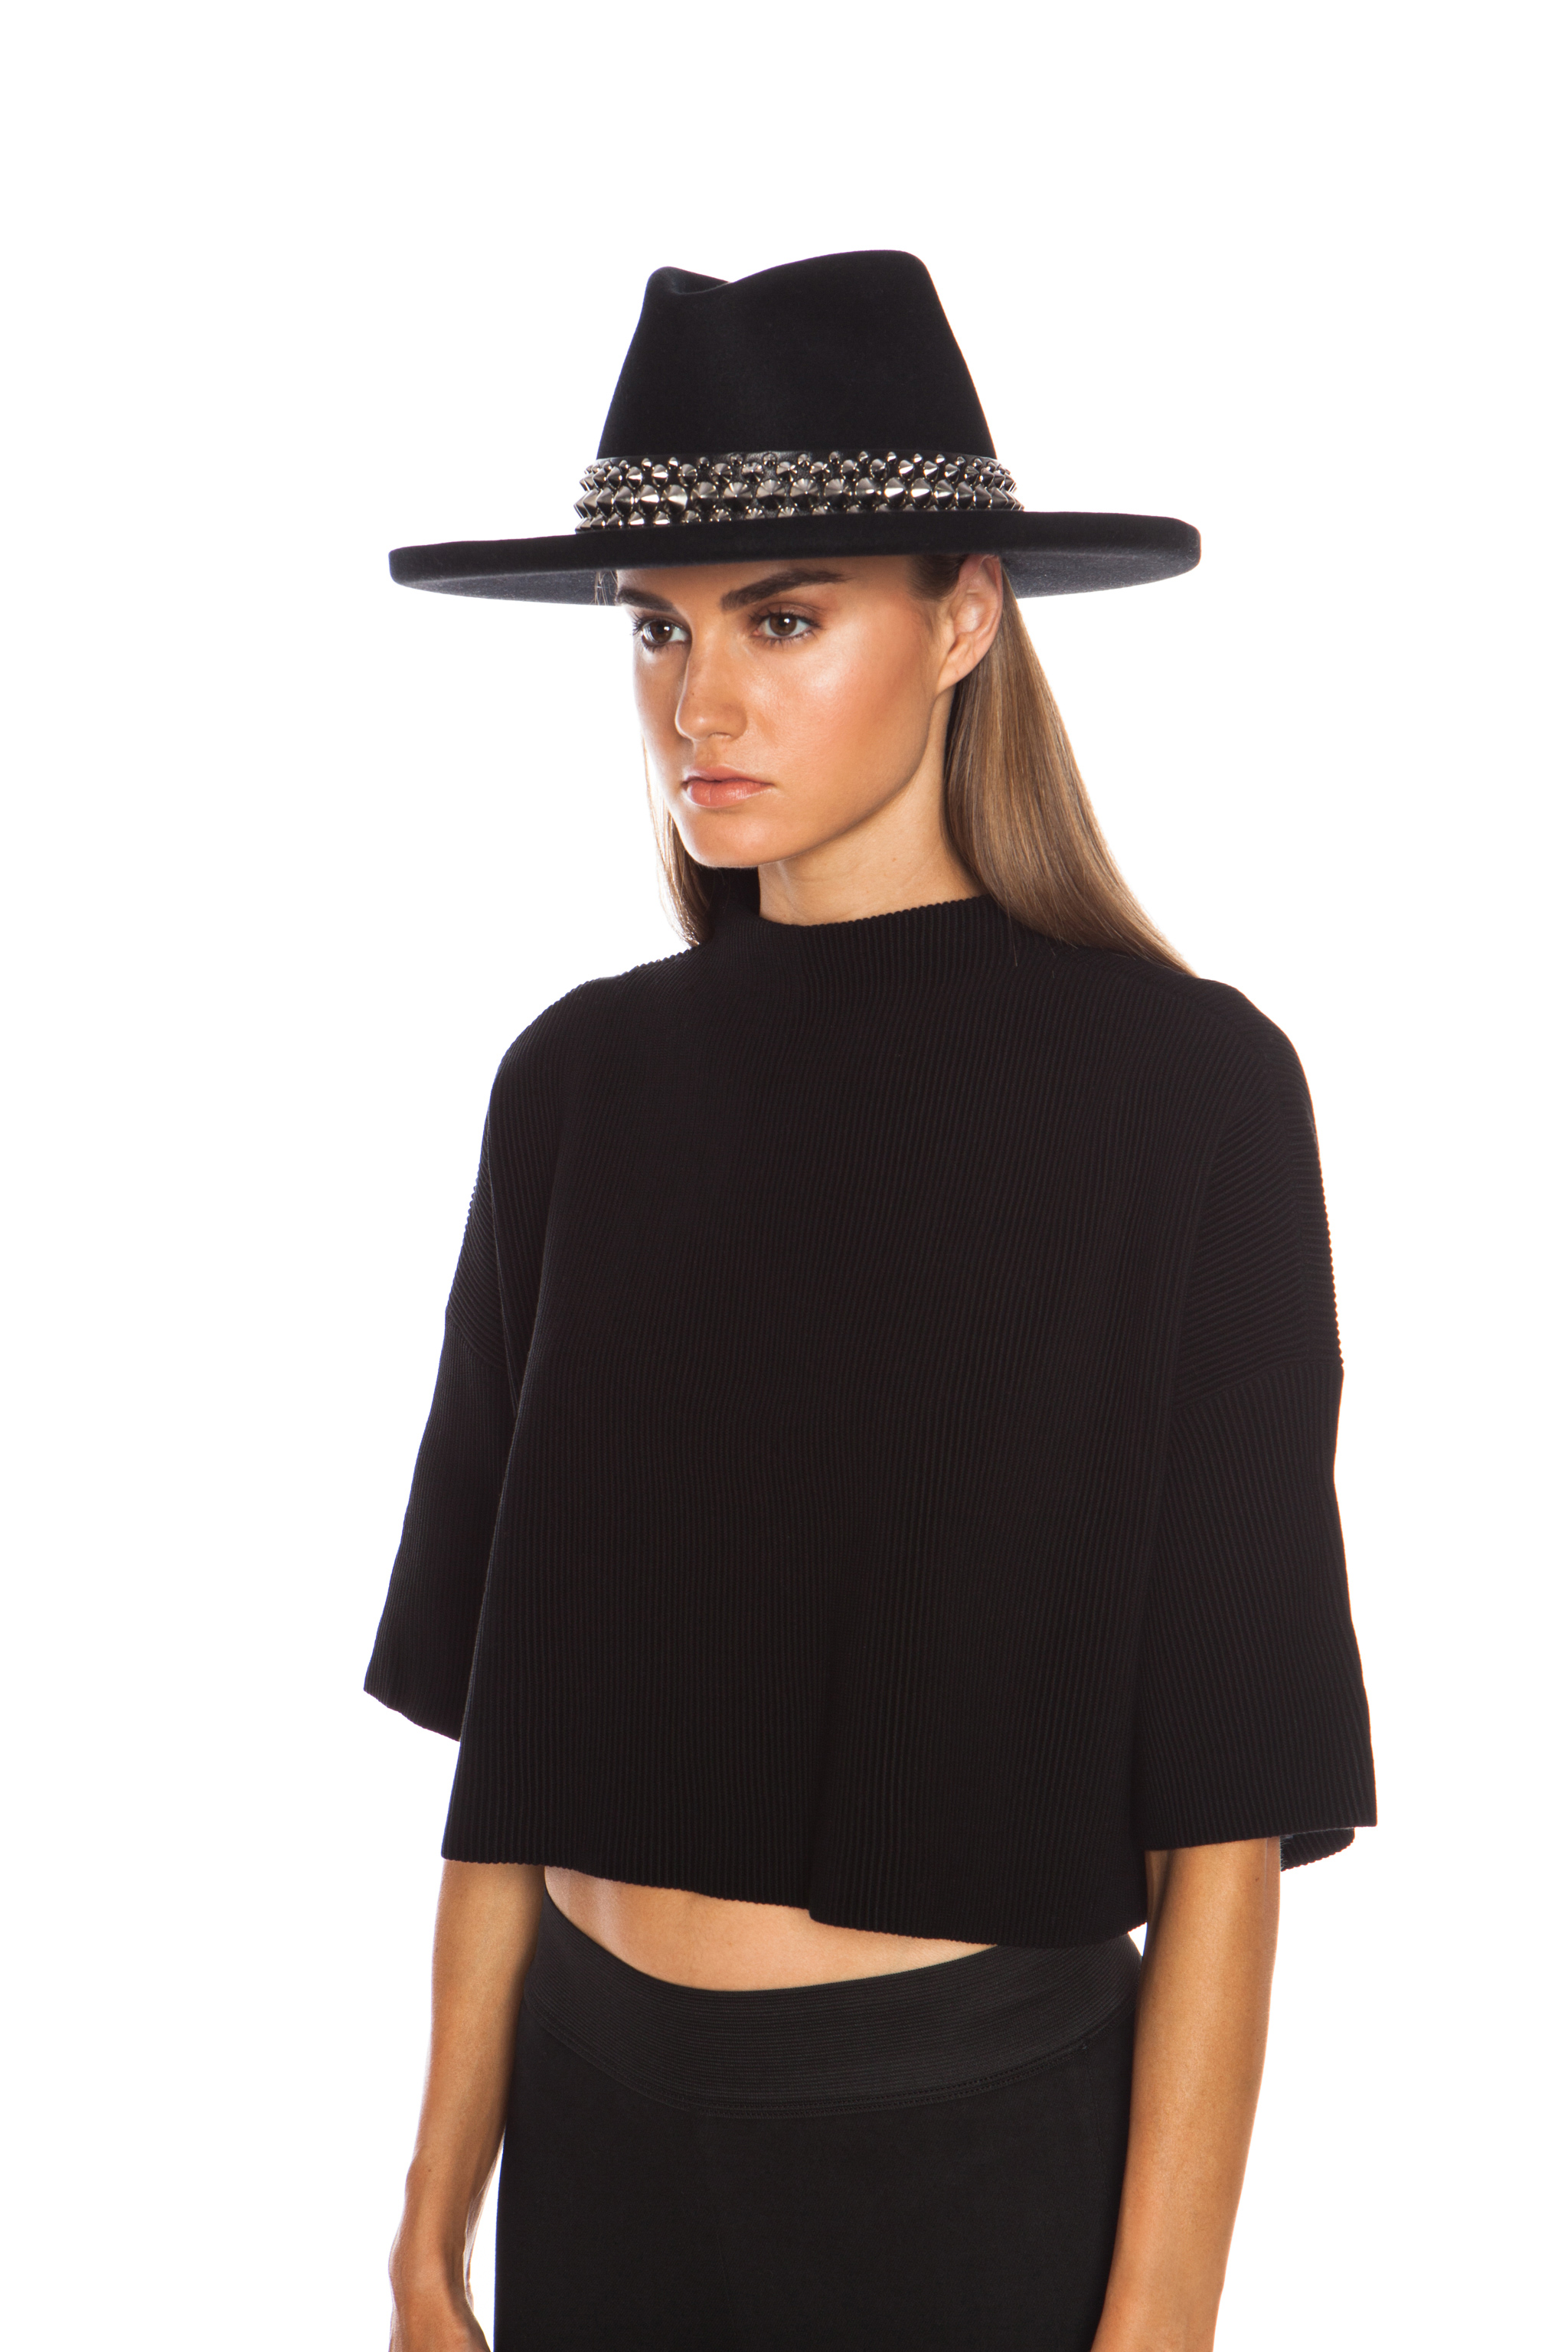 Gladys Tamez Millinery The Johnny Hat with Studded Band in Black in ... 073e42e0c6a